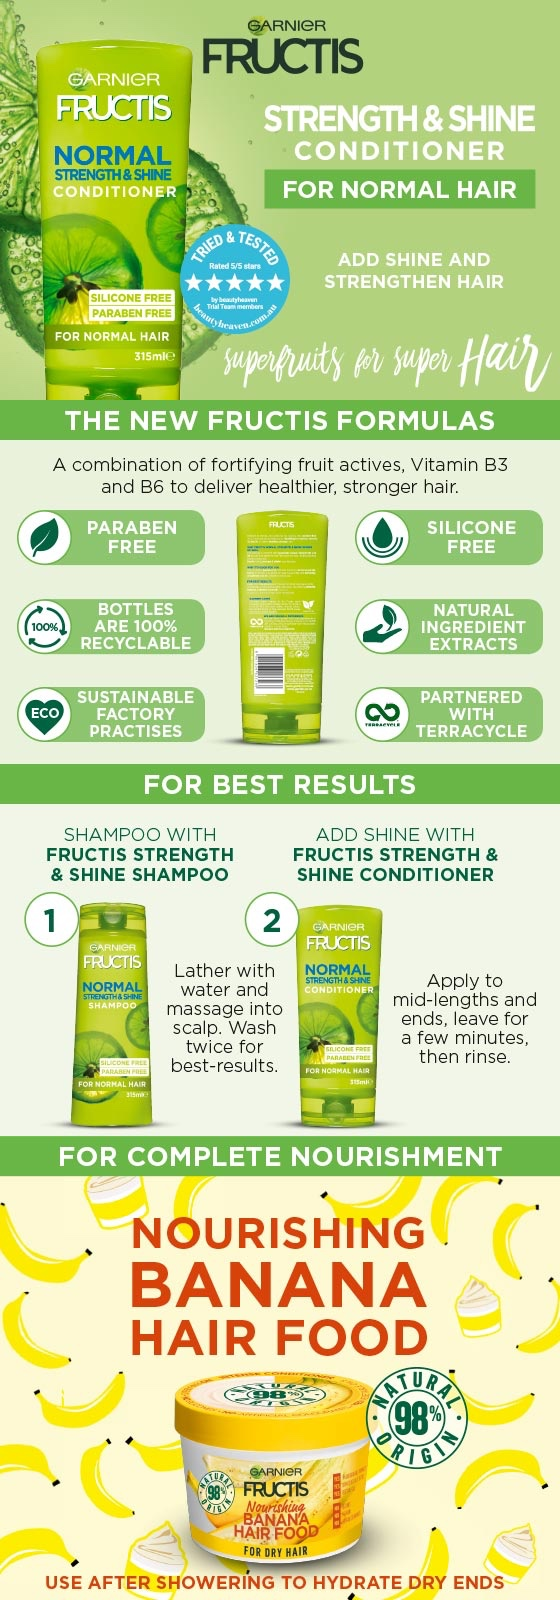 Garnier Fructis Normal Strength & Shine Conditioner 315ml